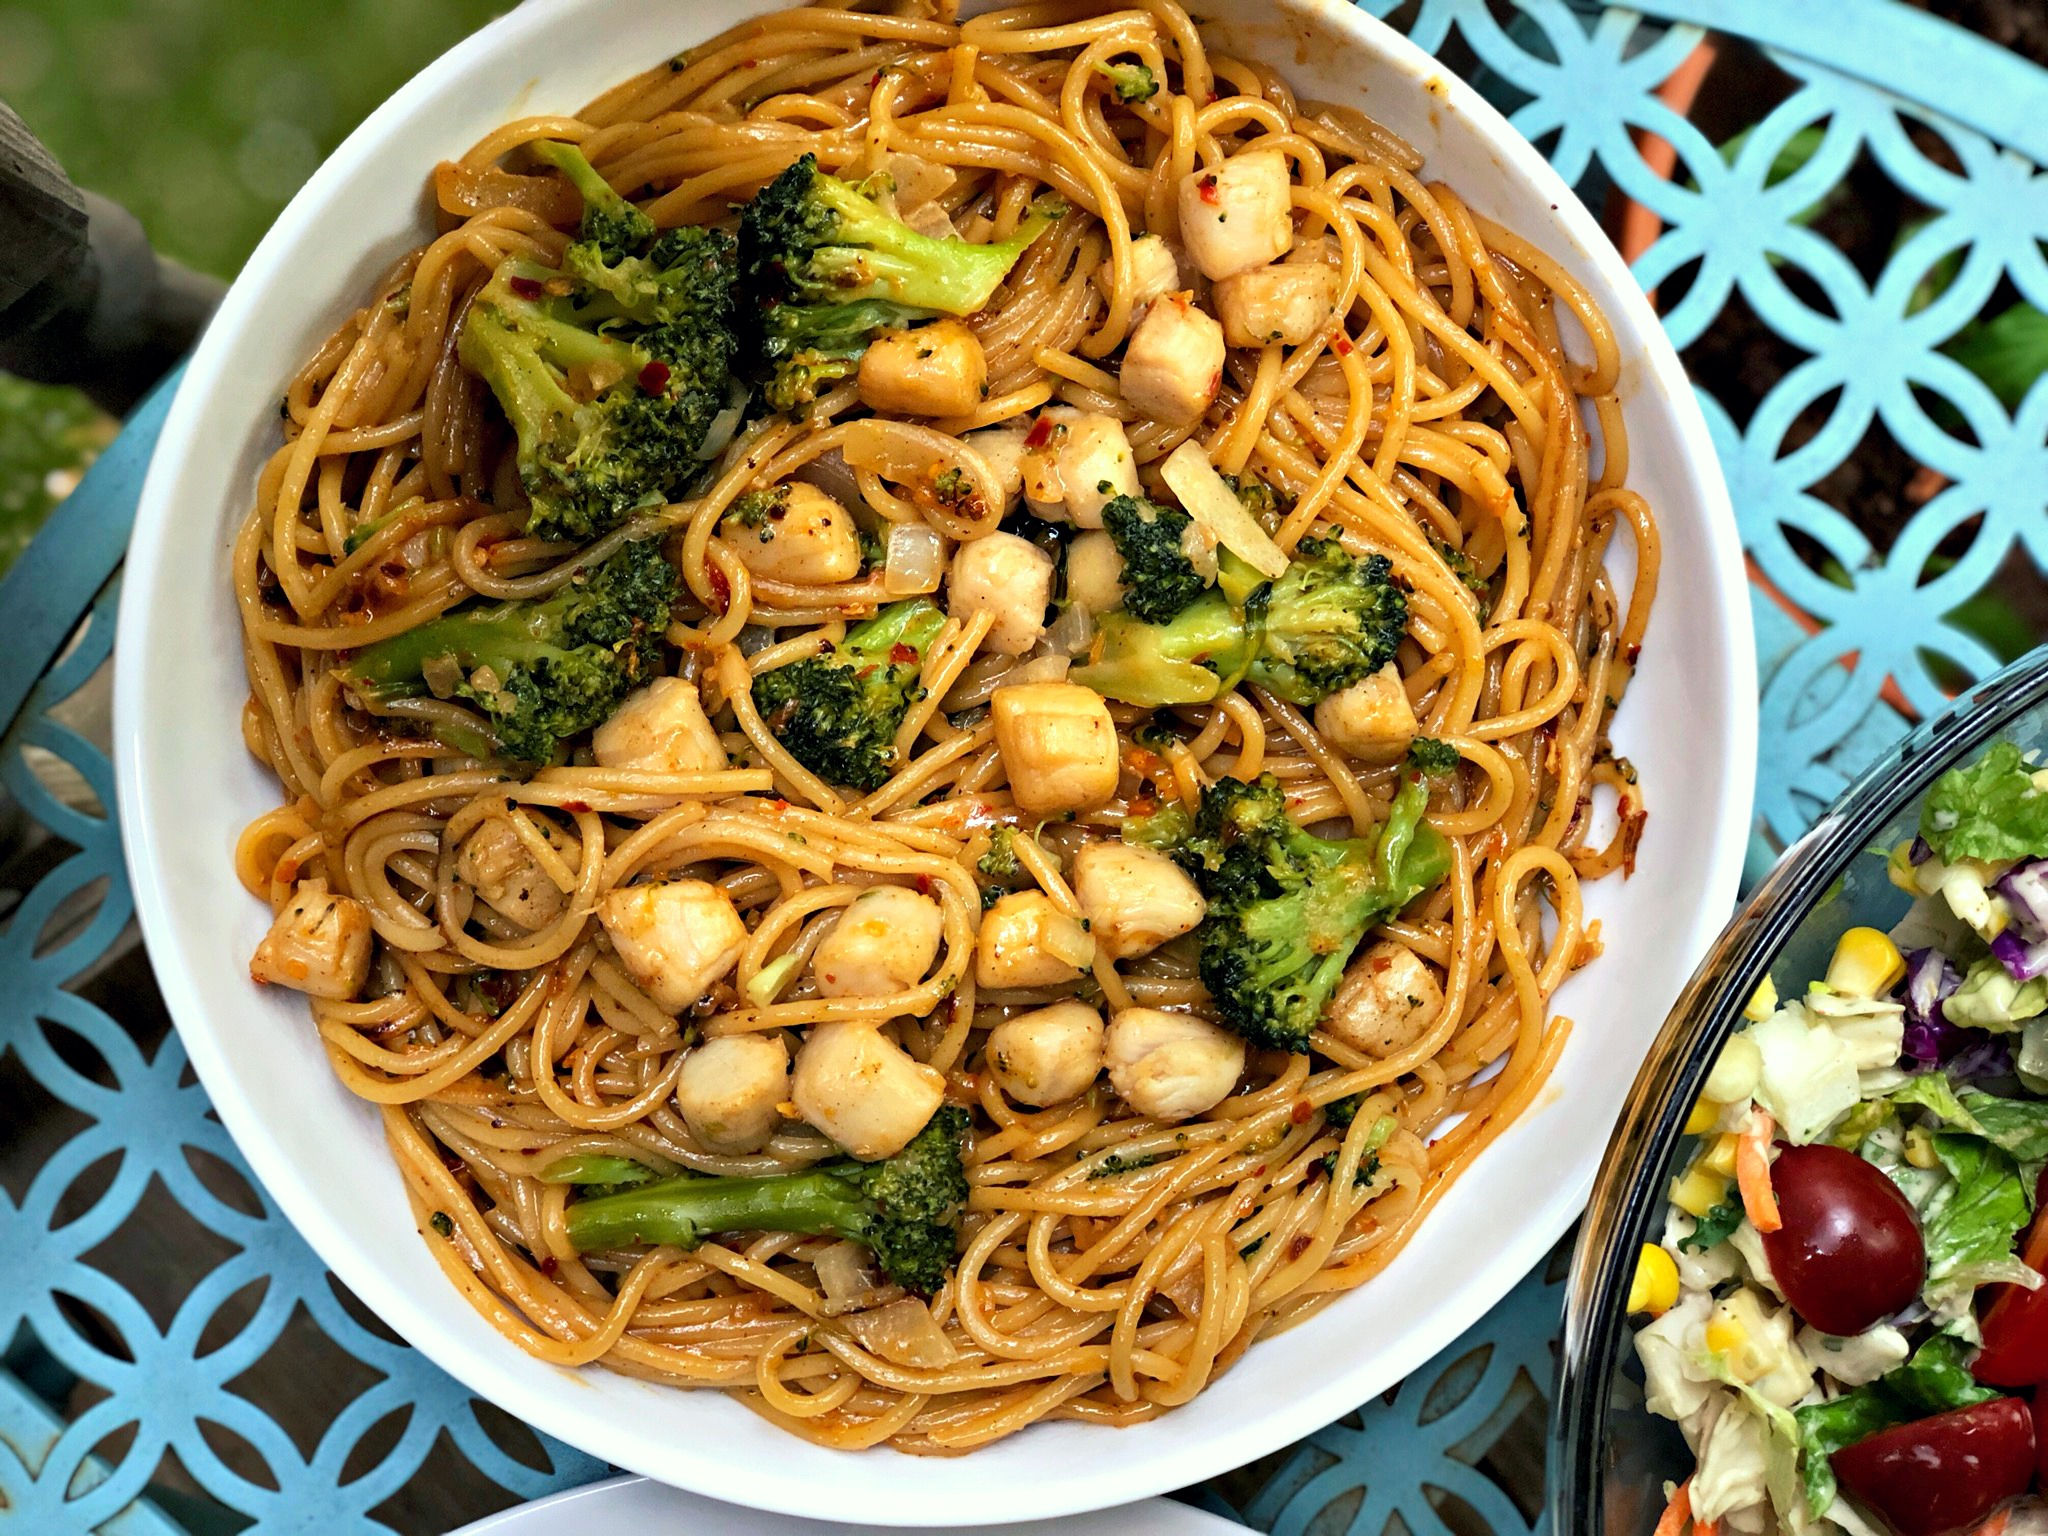 """A complete one-dish meal. """"This is one of my mom's favorite noodle dishes!"""" says Diana71. """"I've spiced it up a bit with more chili crisp than she would normally use, but it's worth it! The thin spaghetti noodles get an Asian flare, and the mini scallops add a wonderful but subtle seafood flavor. The broccoli is cooked perfectly since it is steamed first."""""""